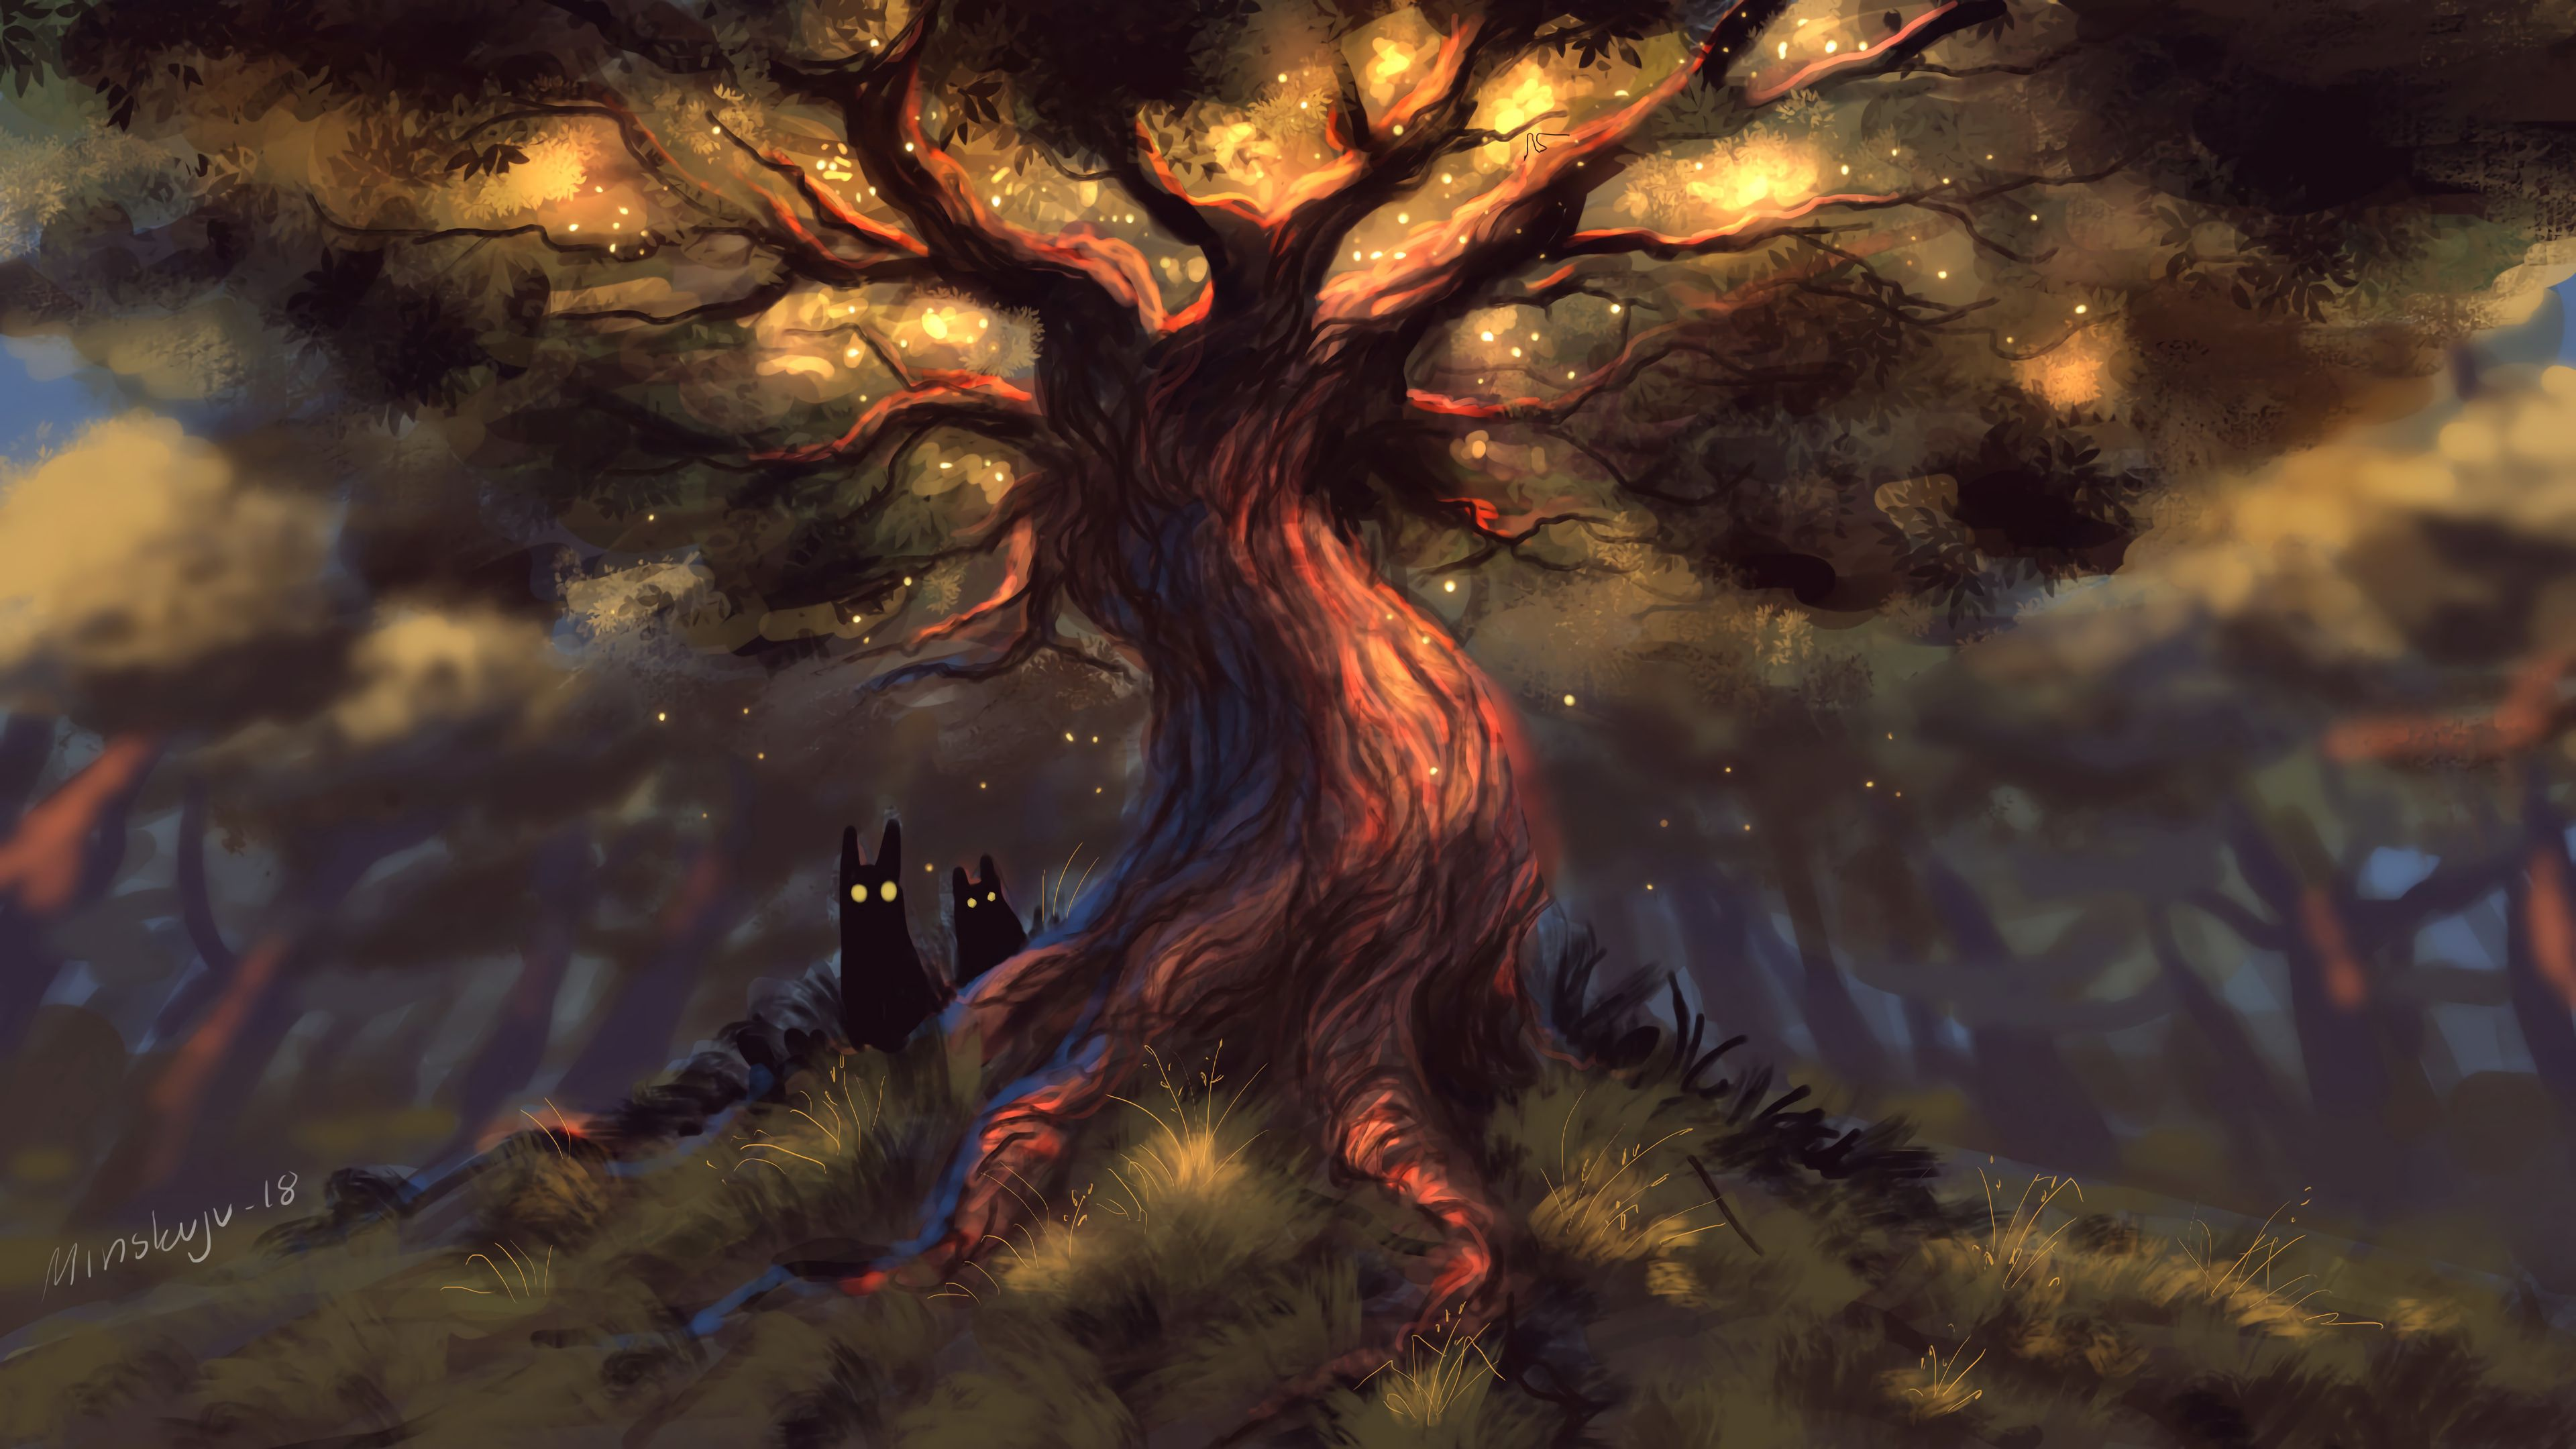 64363 download wallpaper Art, Creatures, Fairy, Fabulous, Forest, Wood, Tree, Dark, Eyes screensavers and pictures for free